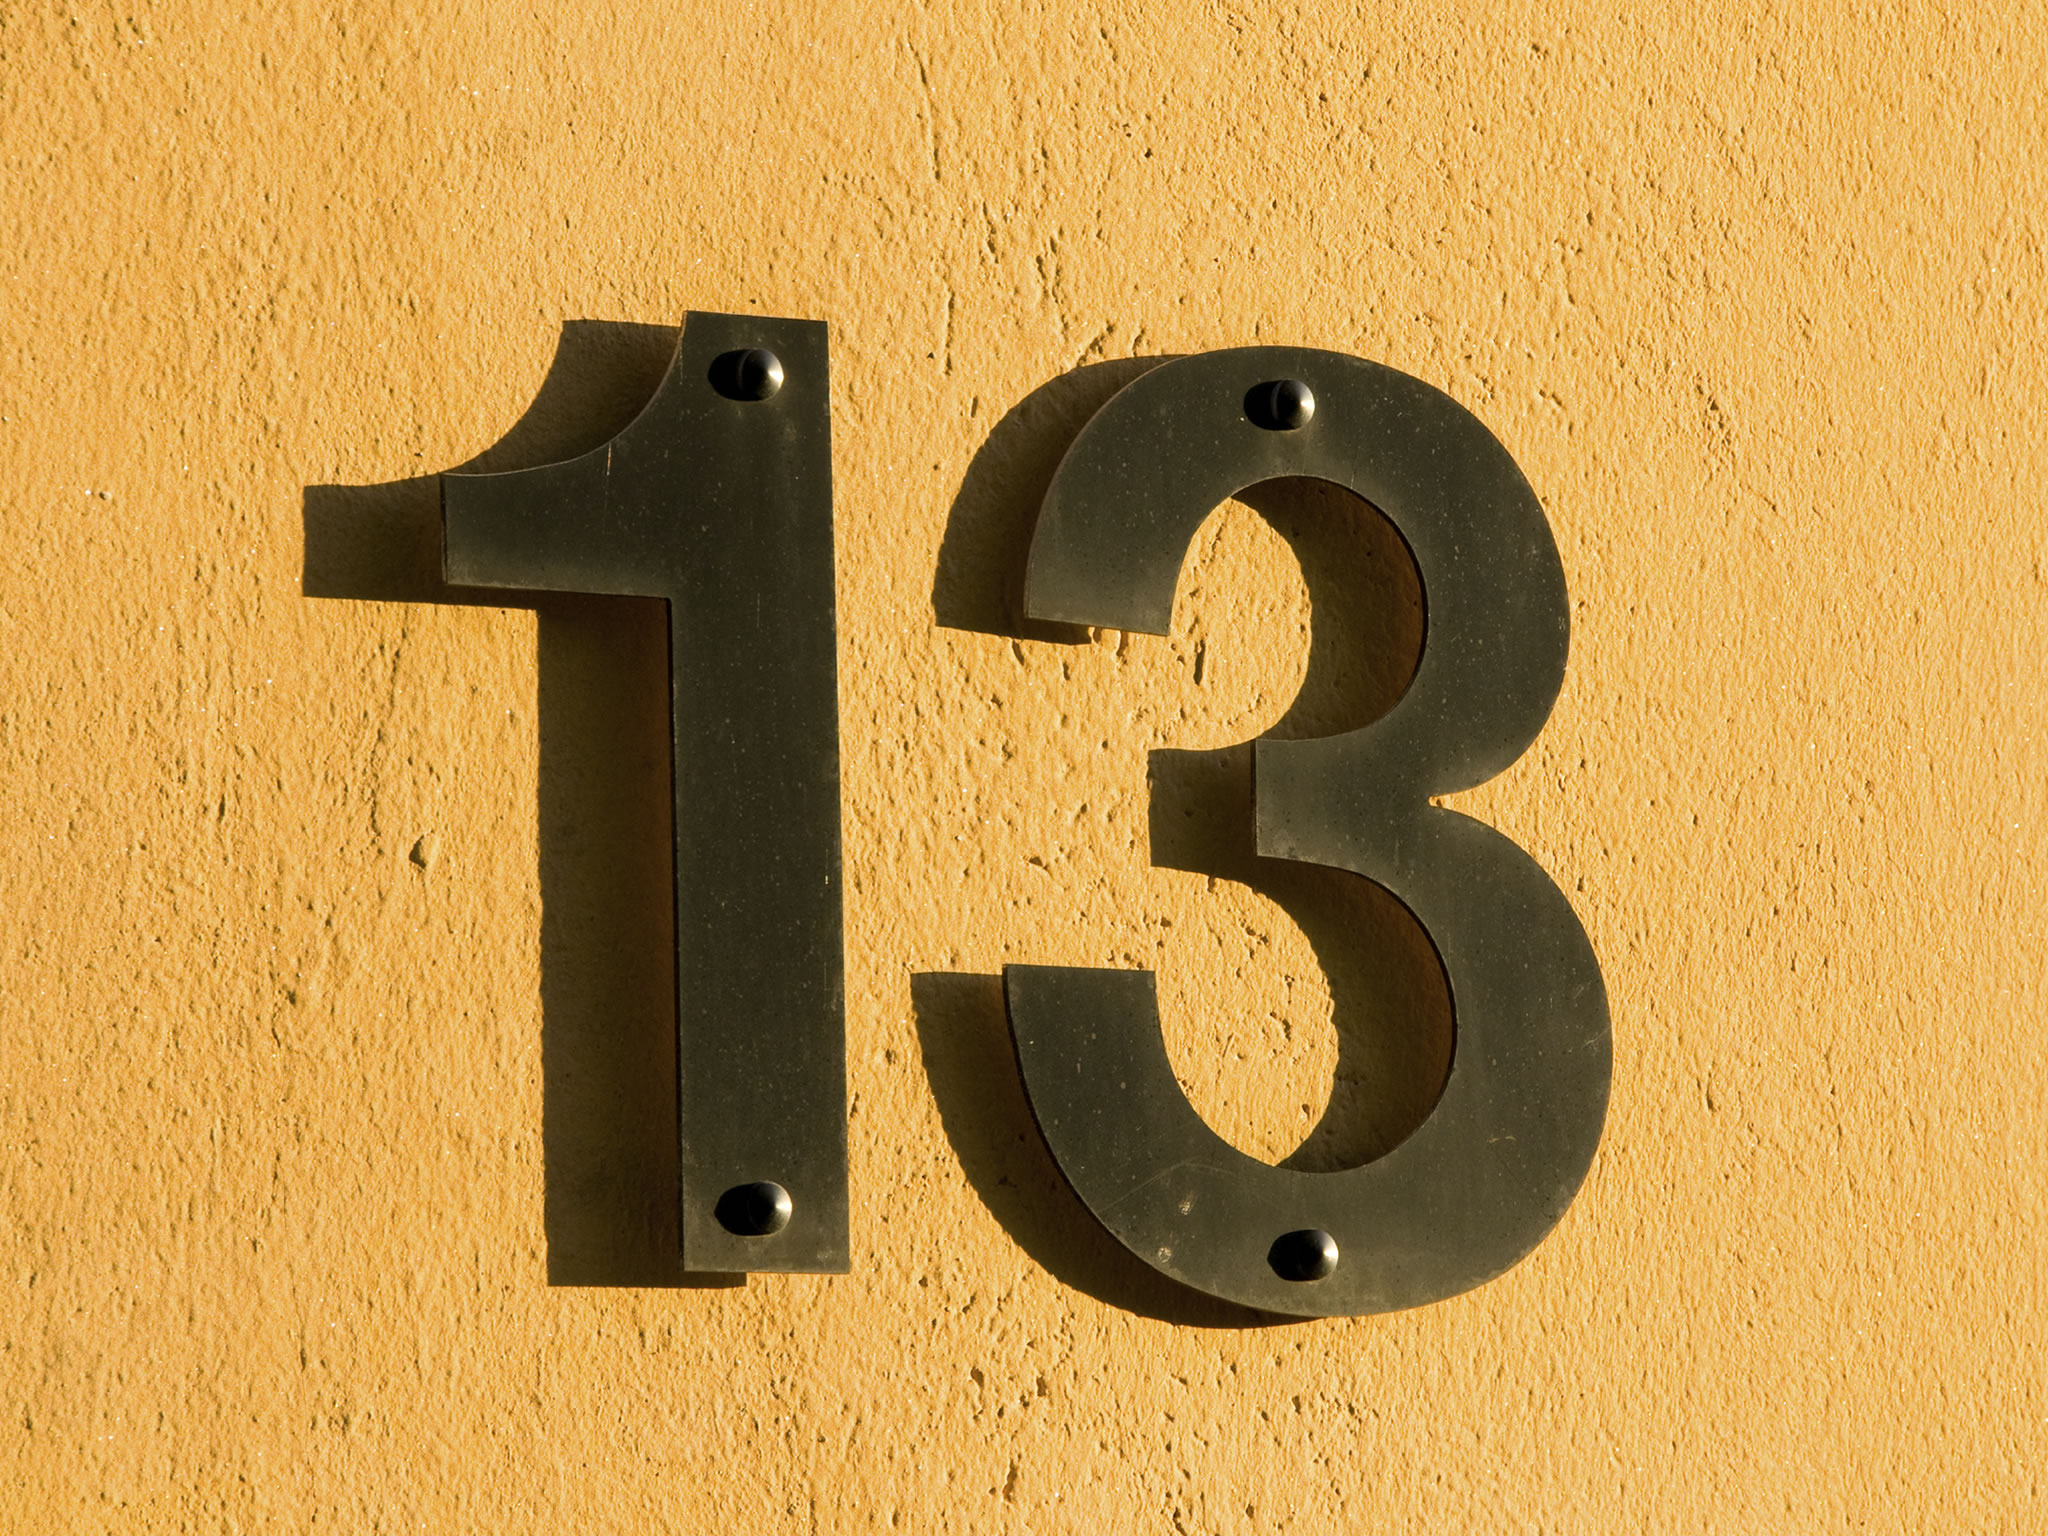 What's so unlucky about the number 13